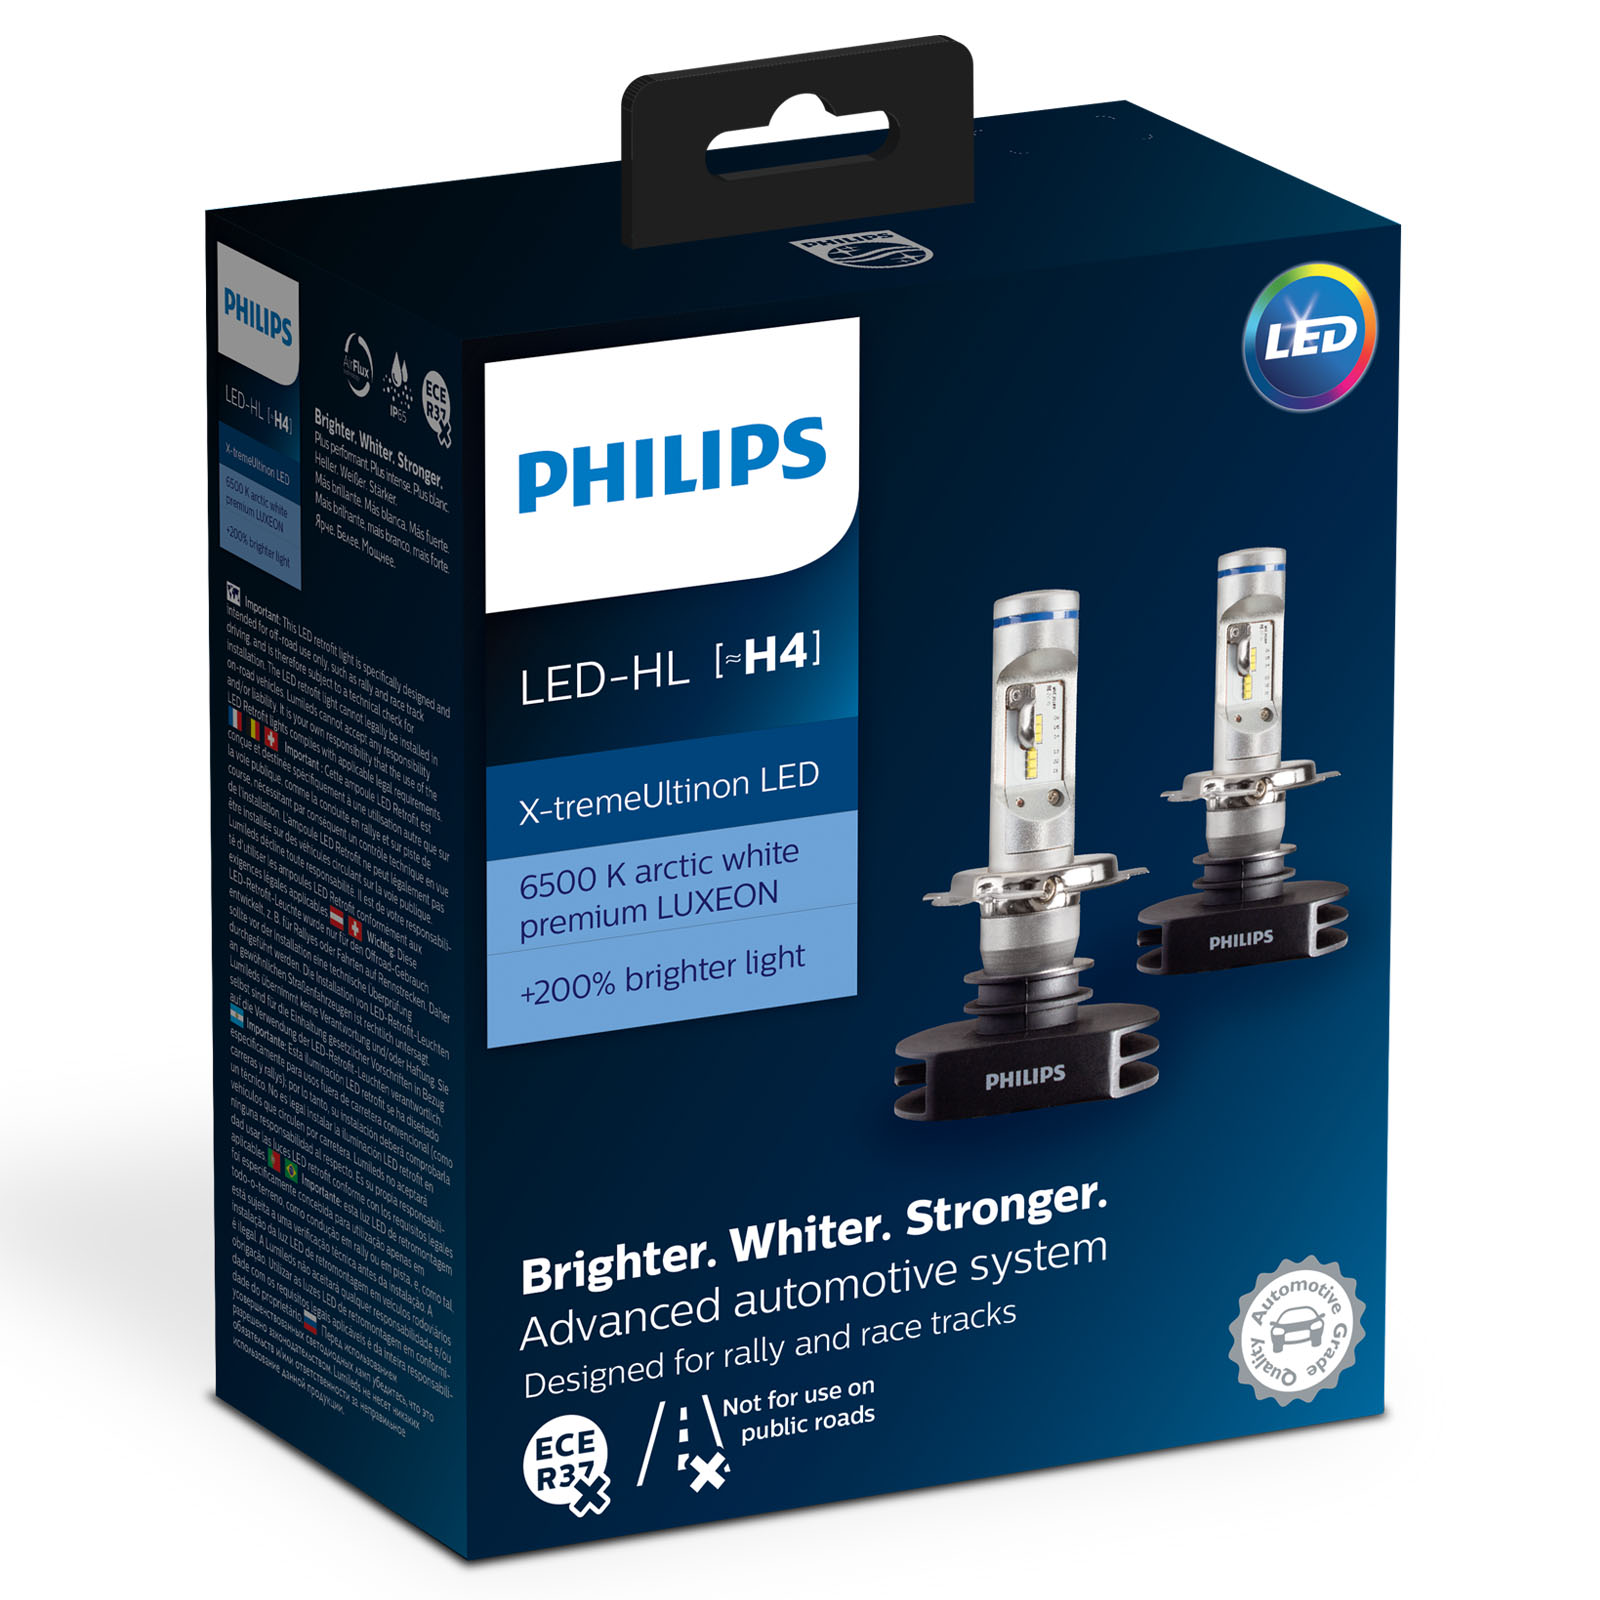 philips x treme ultinon gen1 gen2 led car bulbs h1 h4 h7 hb3 hb4 h8 h11 h16 ebay. Black Bedroom Furniture Sets. Home Design Ideas